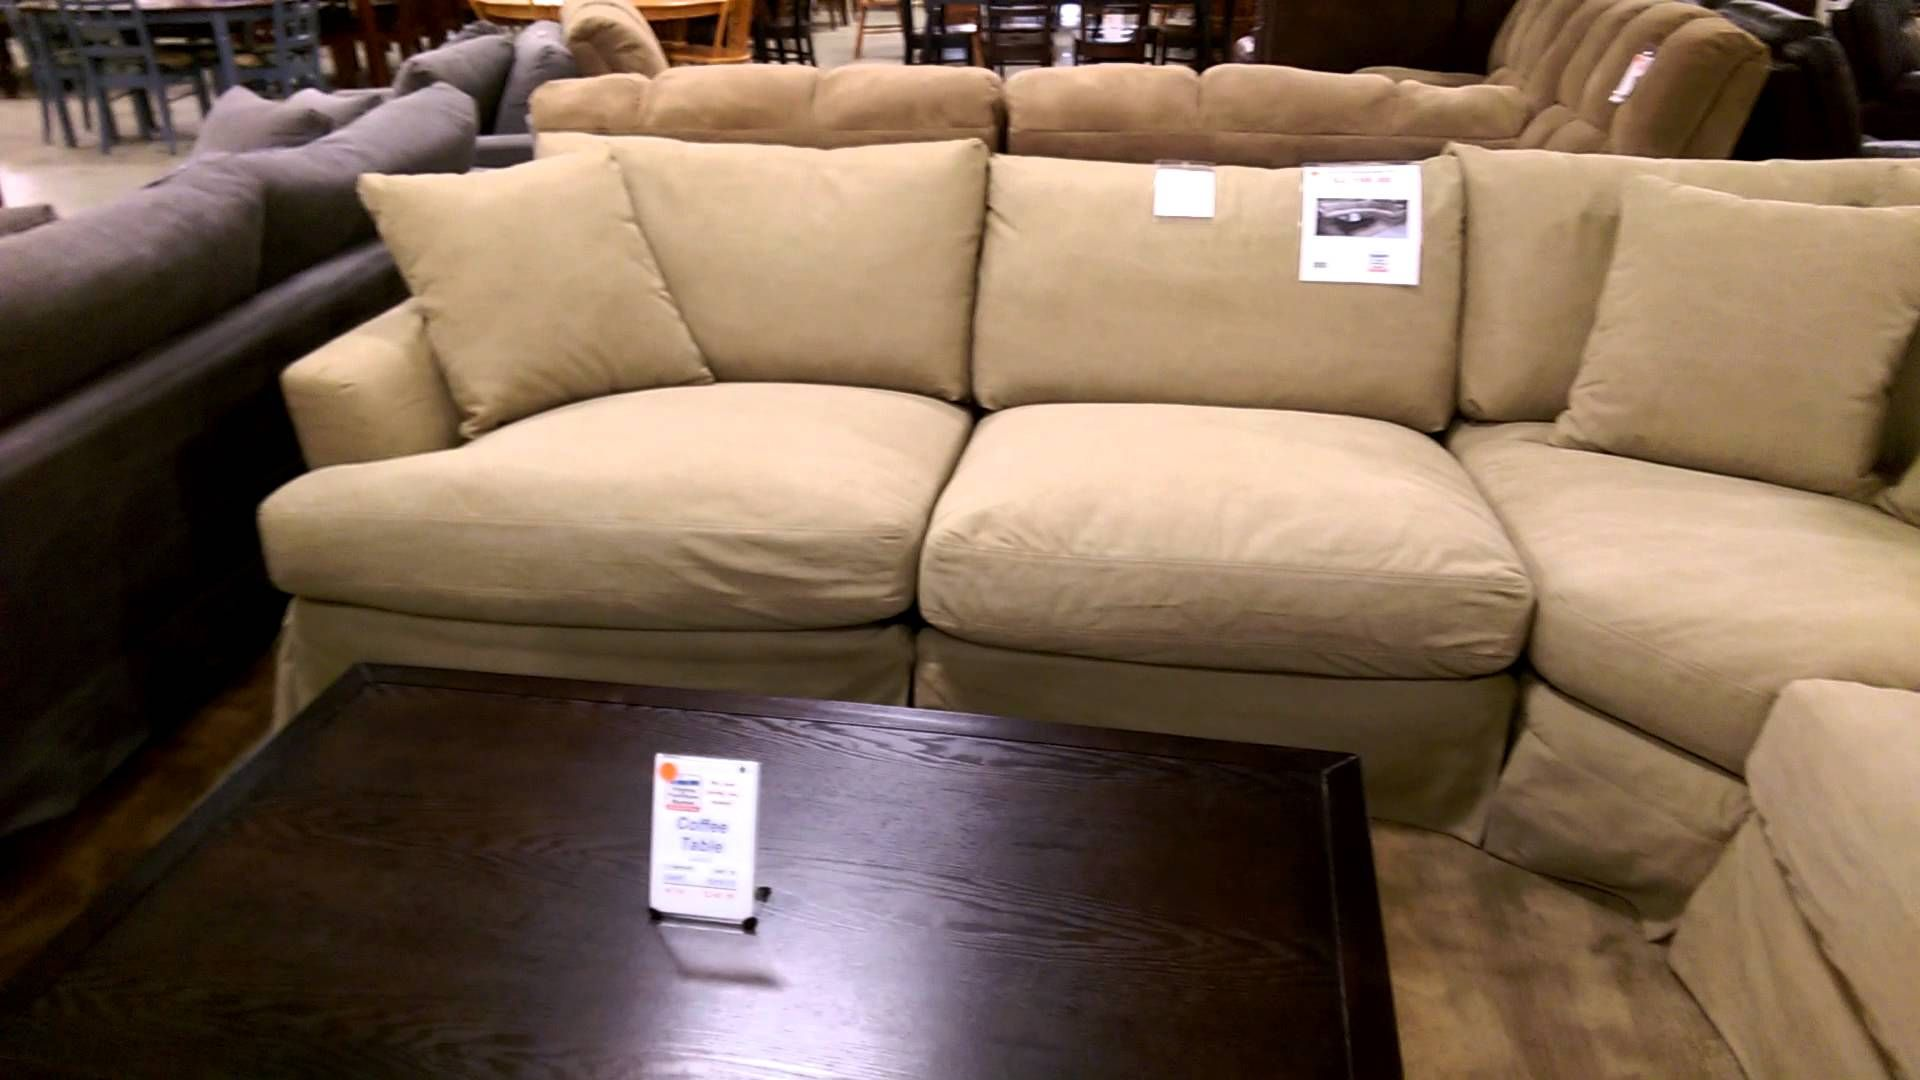 dwight couch leather awesome intended designs ethan extra deep inside sectional top for couches sofas hand rubbed modern sofa rich allen